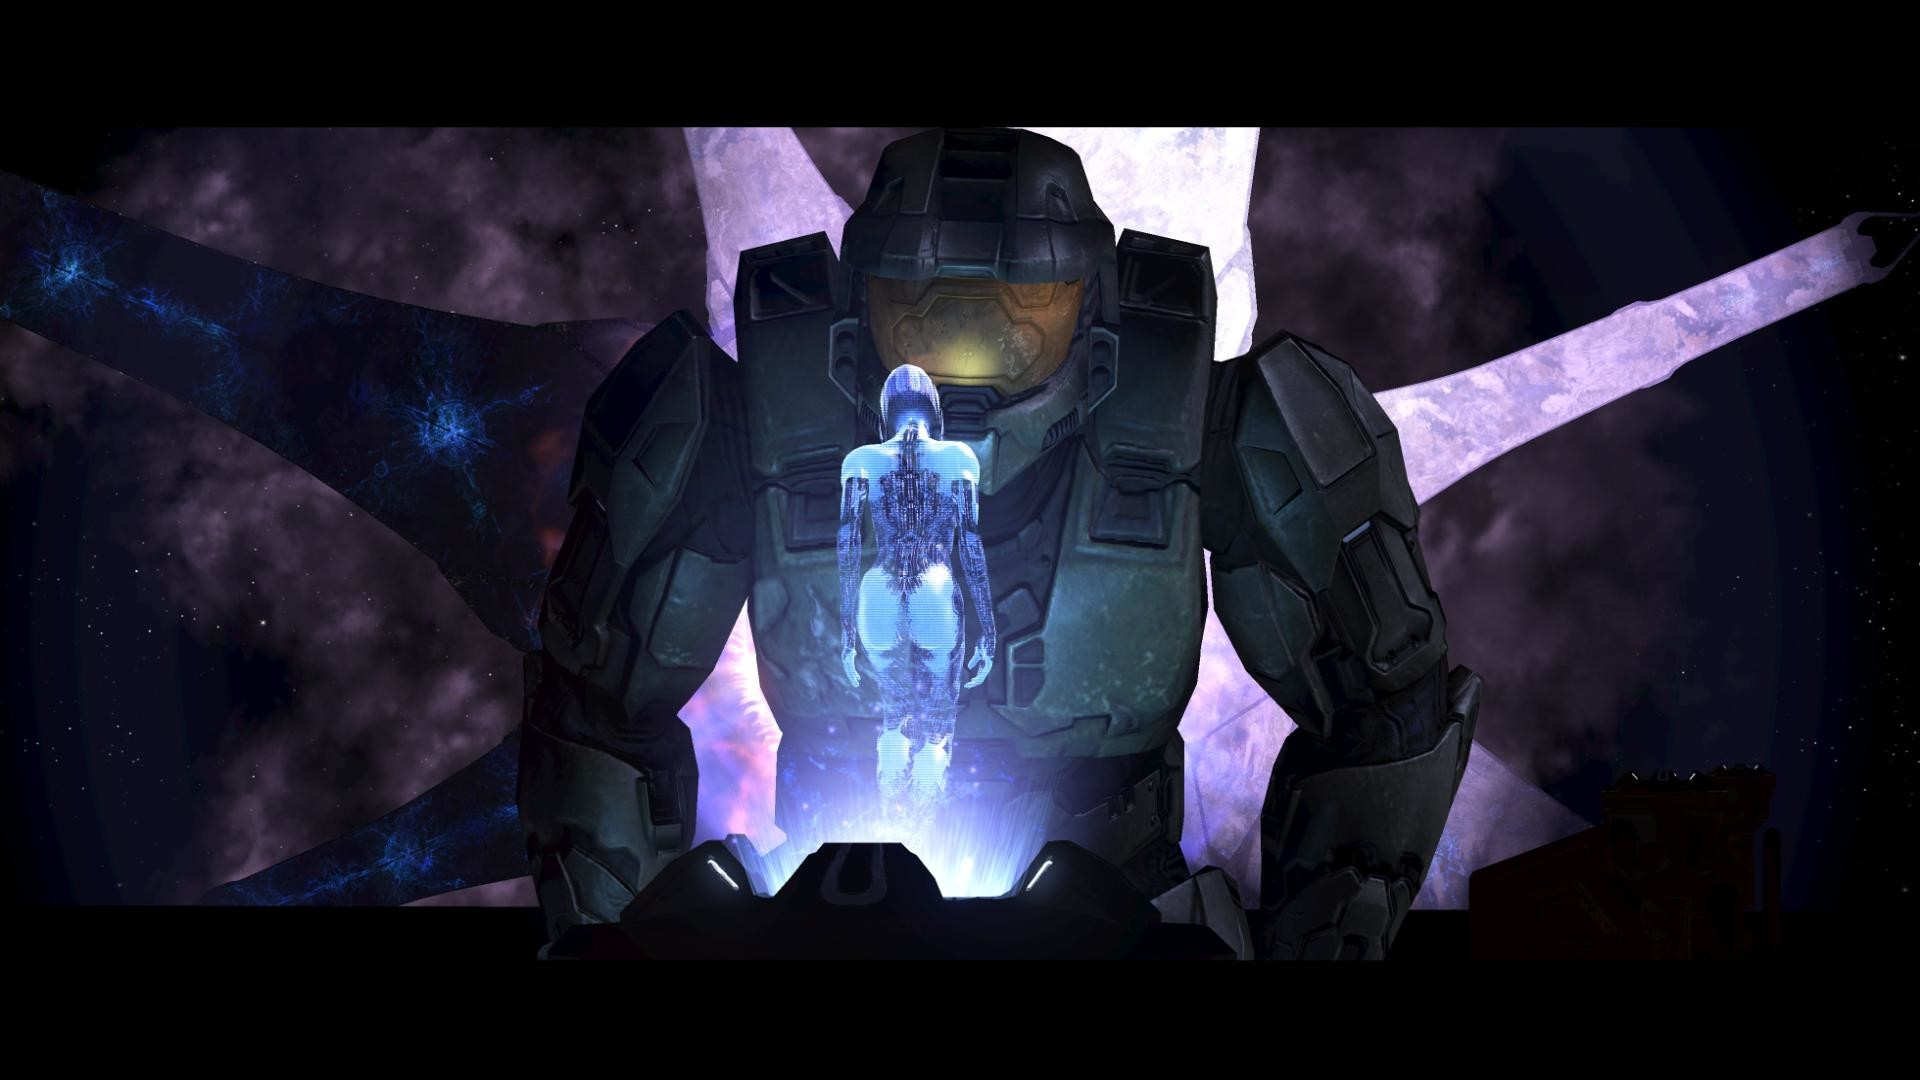 1920x1080 Halo Master Chief HD desktop wallpaper High Definition | HD Wallpapers |  Pinterest | Hd wallpaper, Wallpaper and Hd desktop